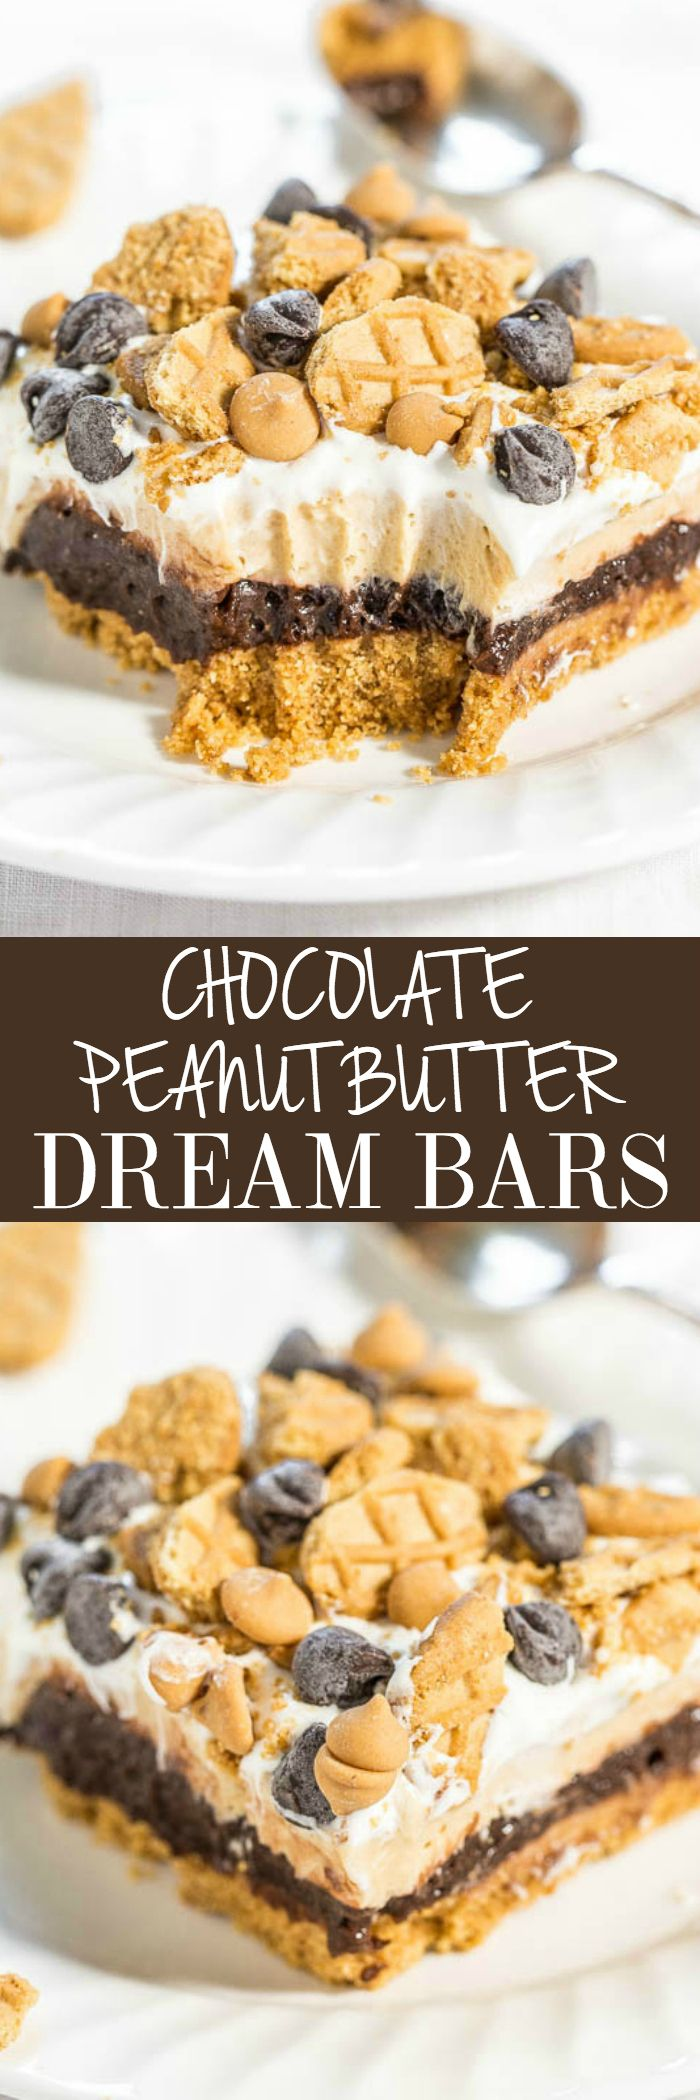 chocolate peanut butter dream bars peanut butter smores bars crust ...